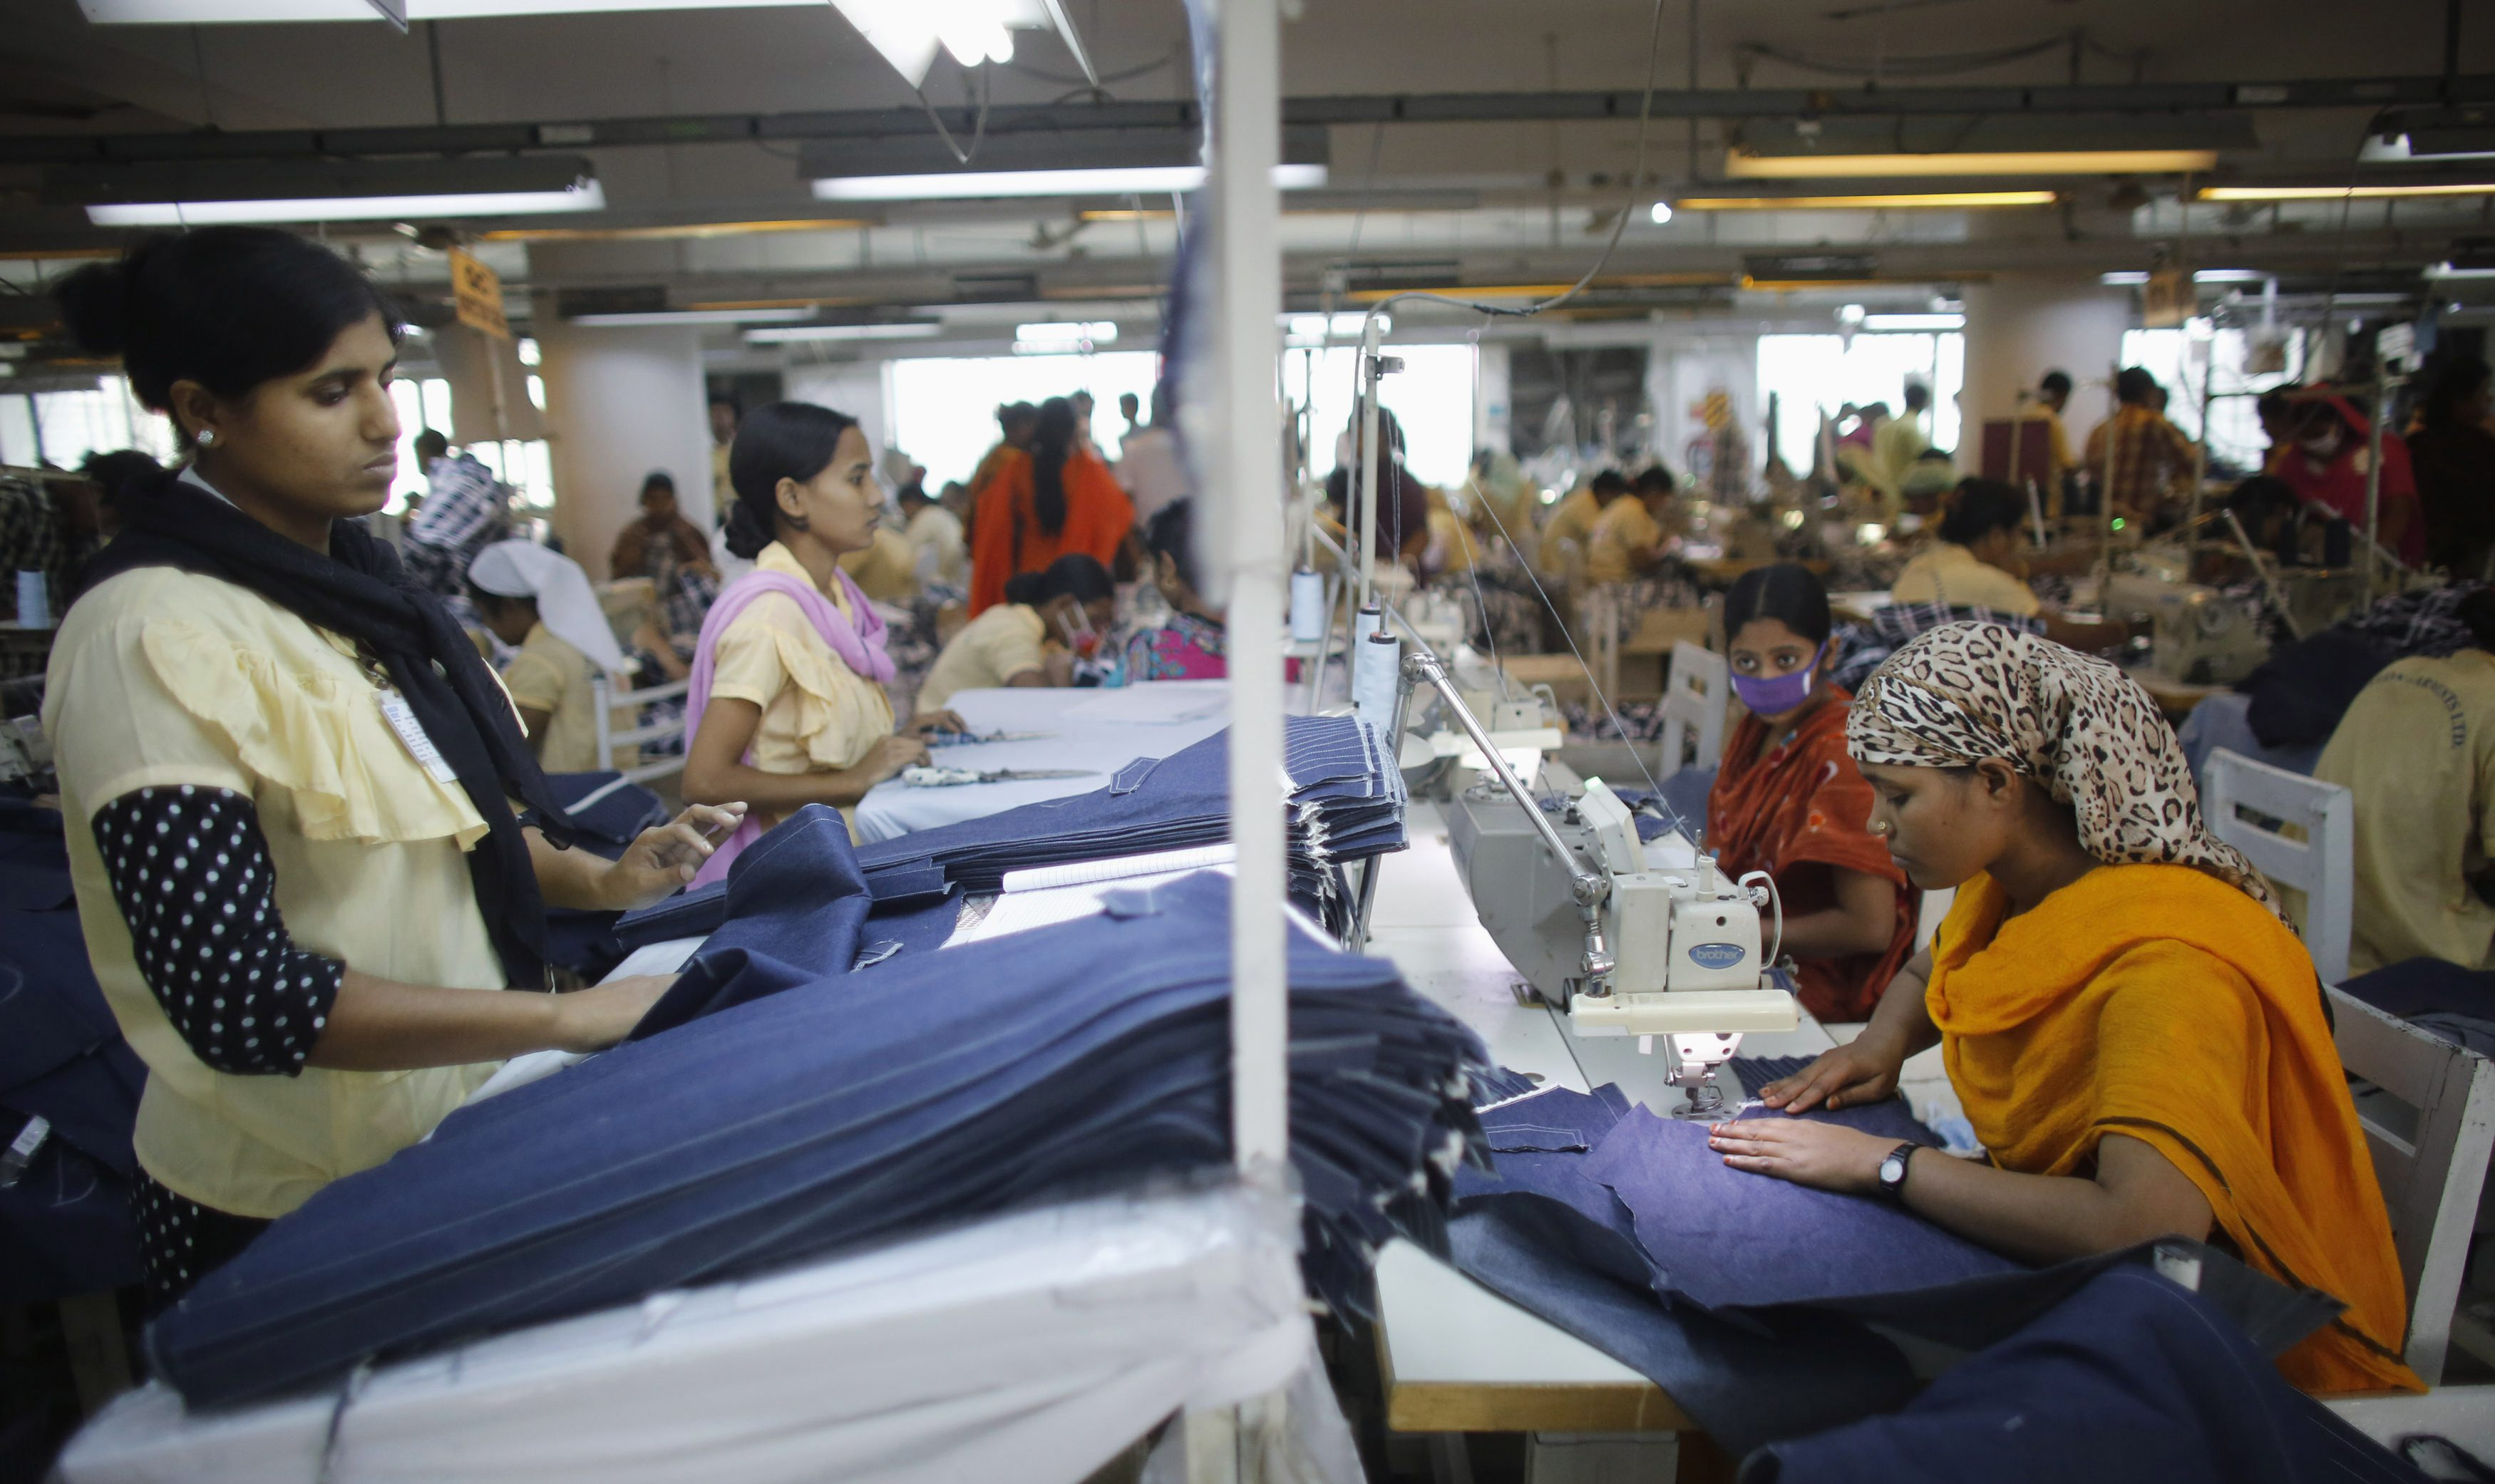 Employees work in a factory of Babylon Garments in Dhaka January 3, 2014. On the outskirts of Dhaka, Babylon Garments has shortened work shifts to eight hours from the usual 10 and plans to shutter production lines as months of election-related violence disrupts transport and prompts global retailers to curb orders. Picture taken January 3, 2014. To match BANGLADESH-GARMENTS/ REUTERS/Andrew Biraj (BANGLADESH - Tags: BUSINESS EMPLOYMENT TEXTILE) - RTX175UR